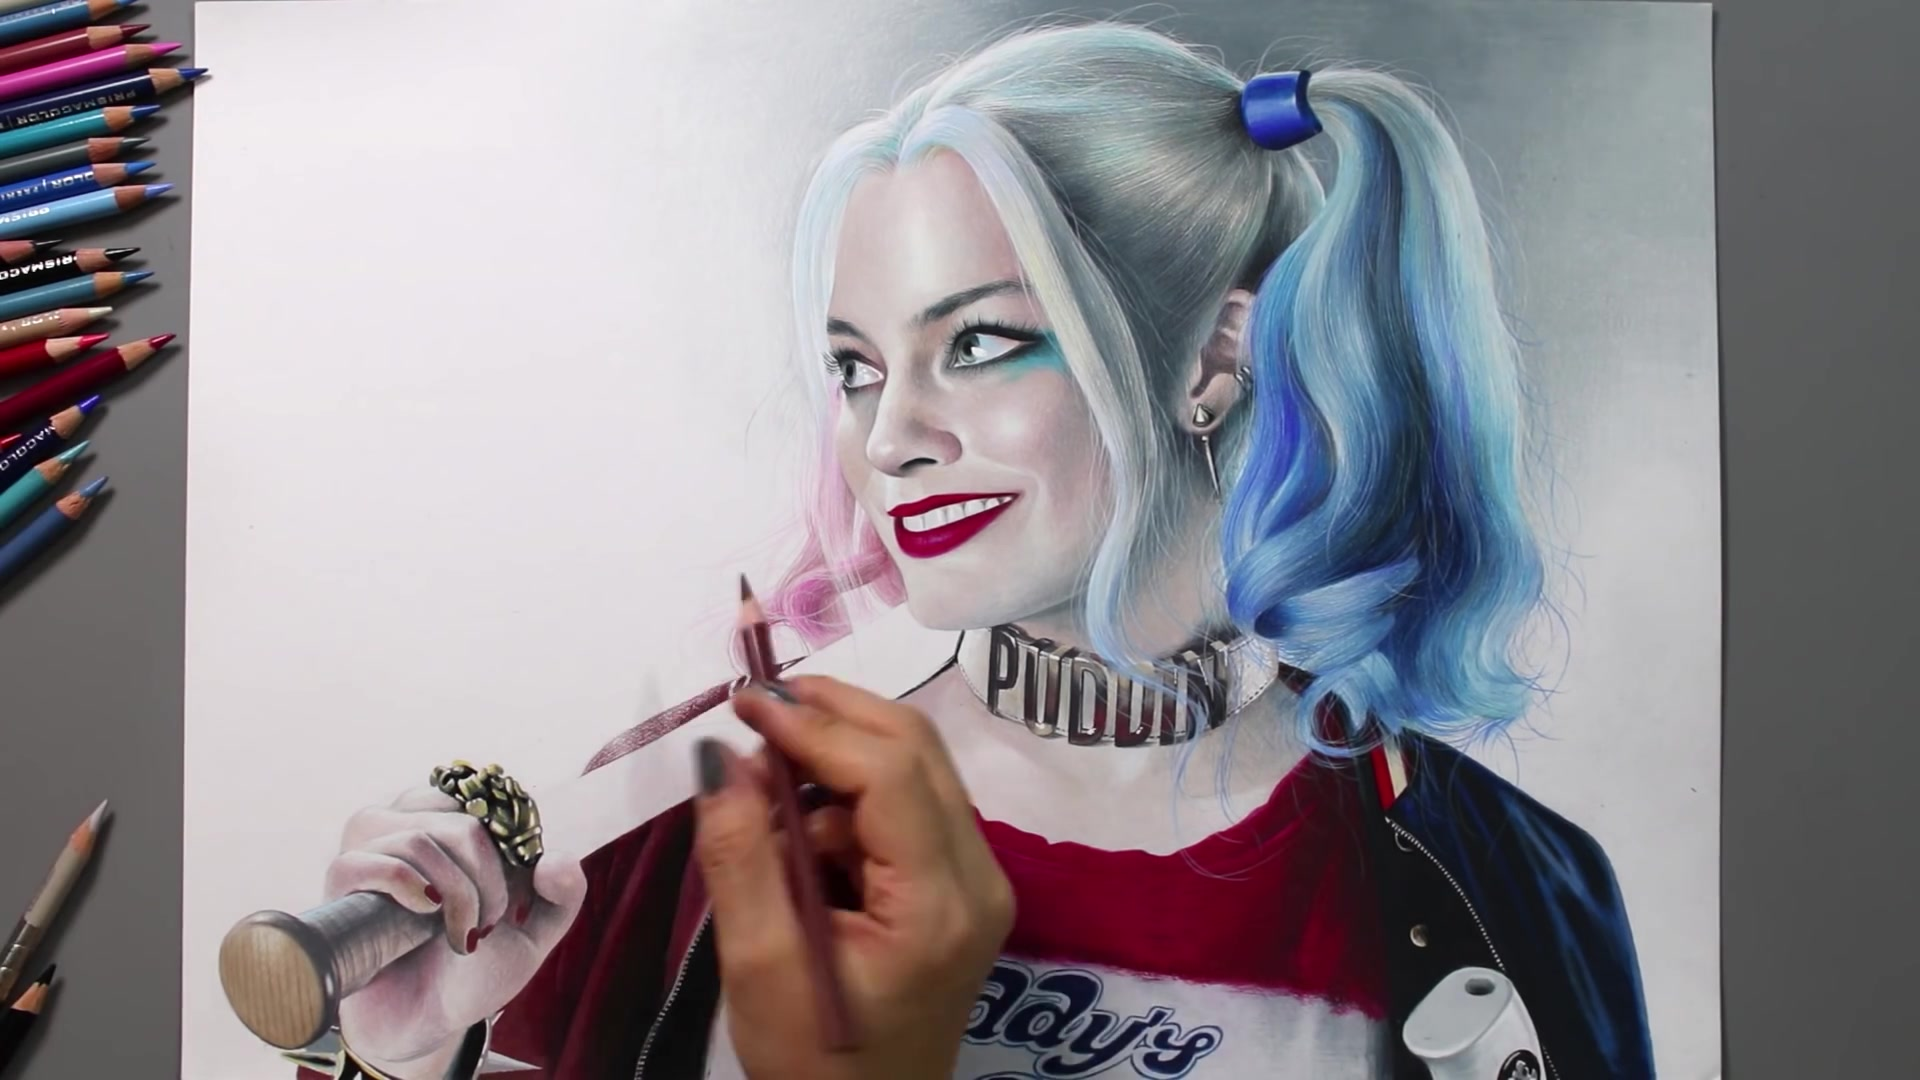 Drawing Hands Episode 63: Speed Drawing Suicide Squad's Harley Quinn